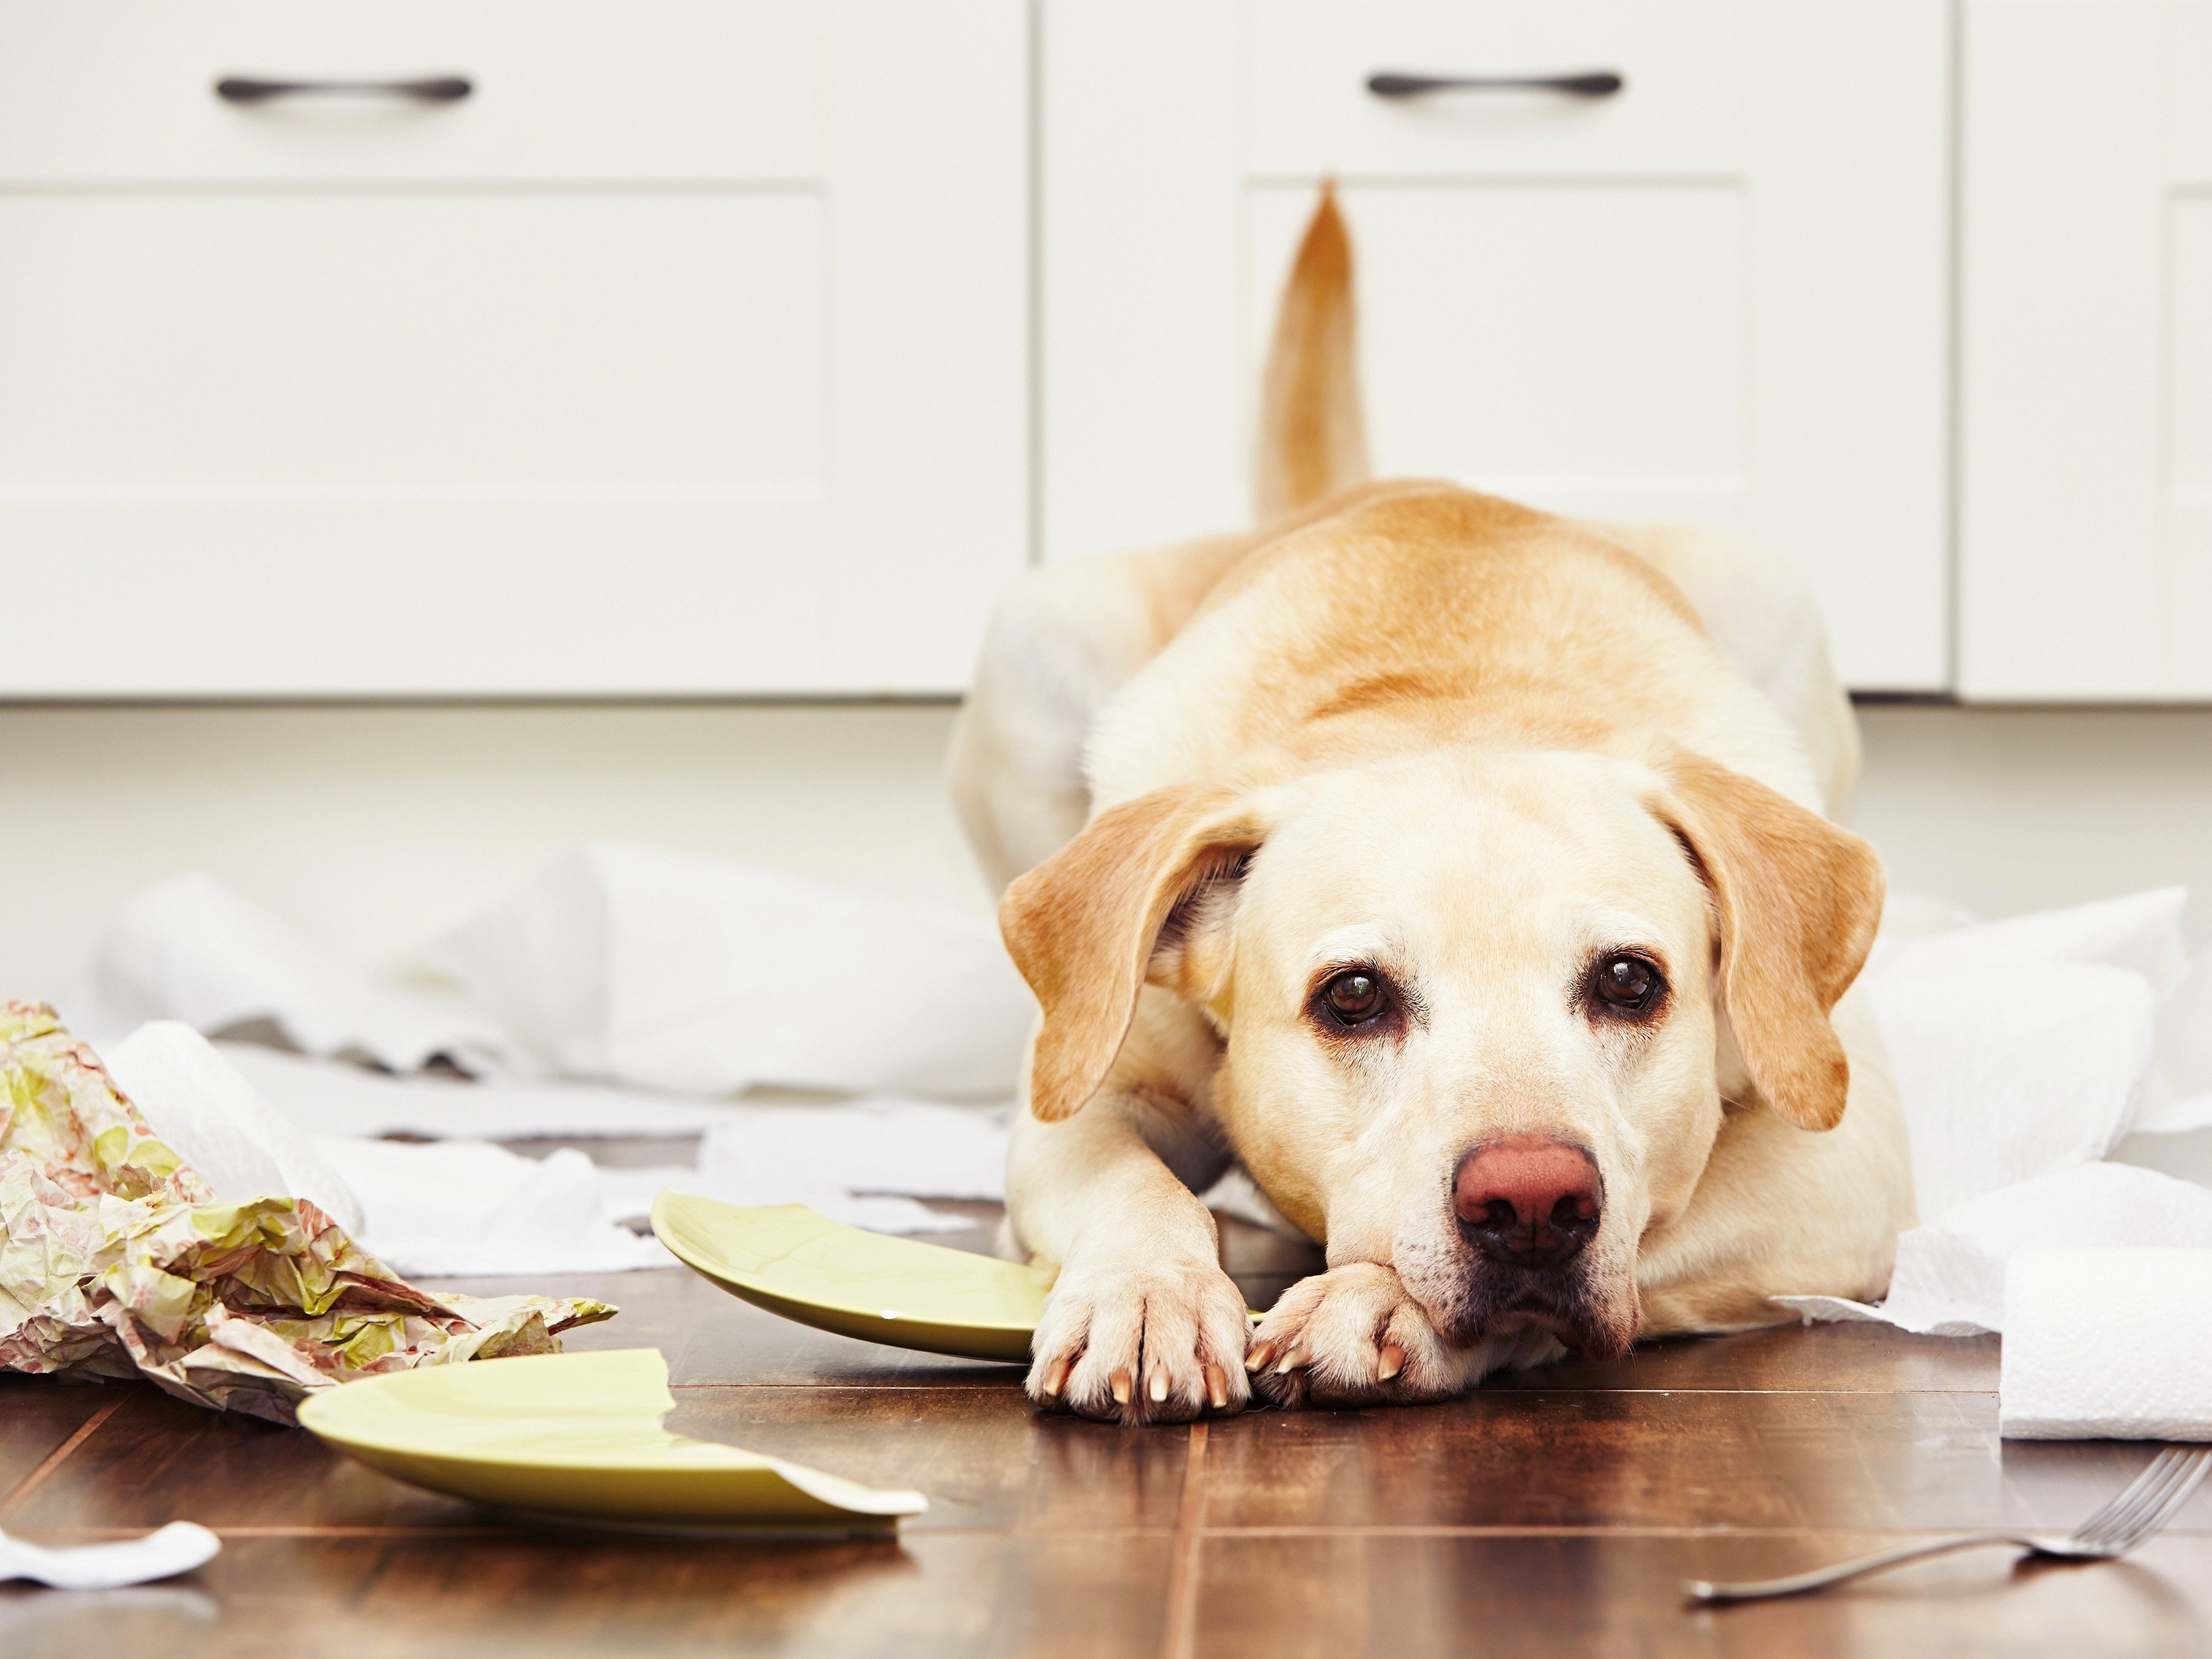 2. Owning a dog can be expensive